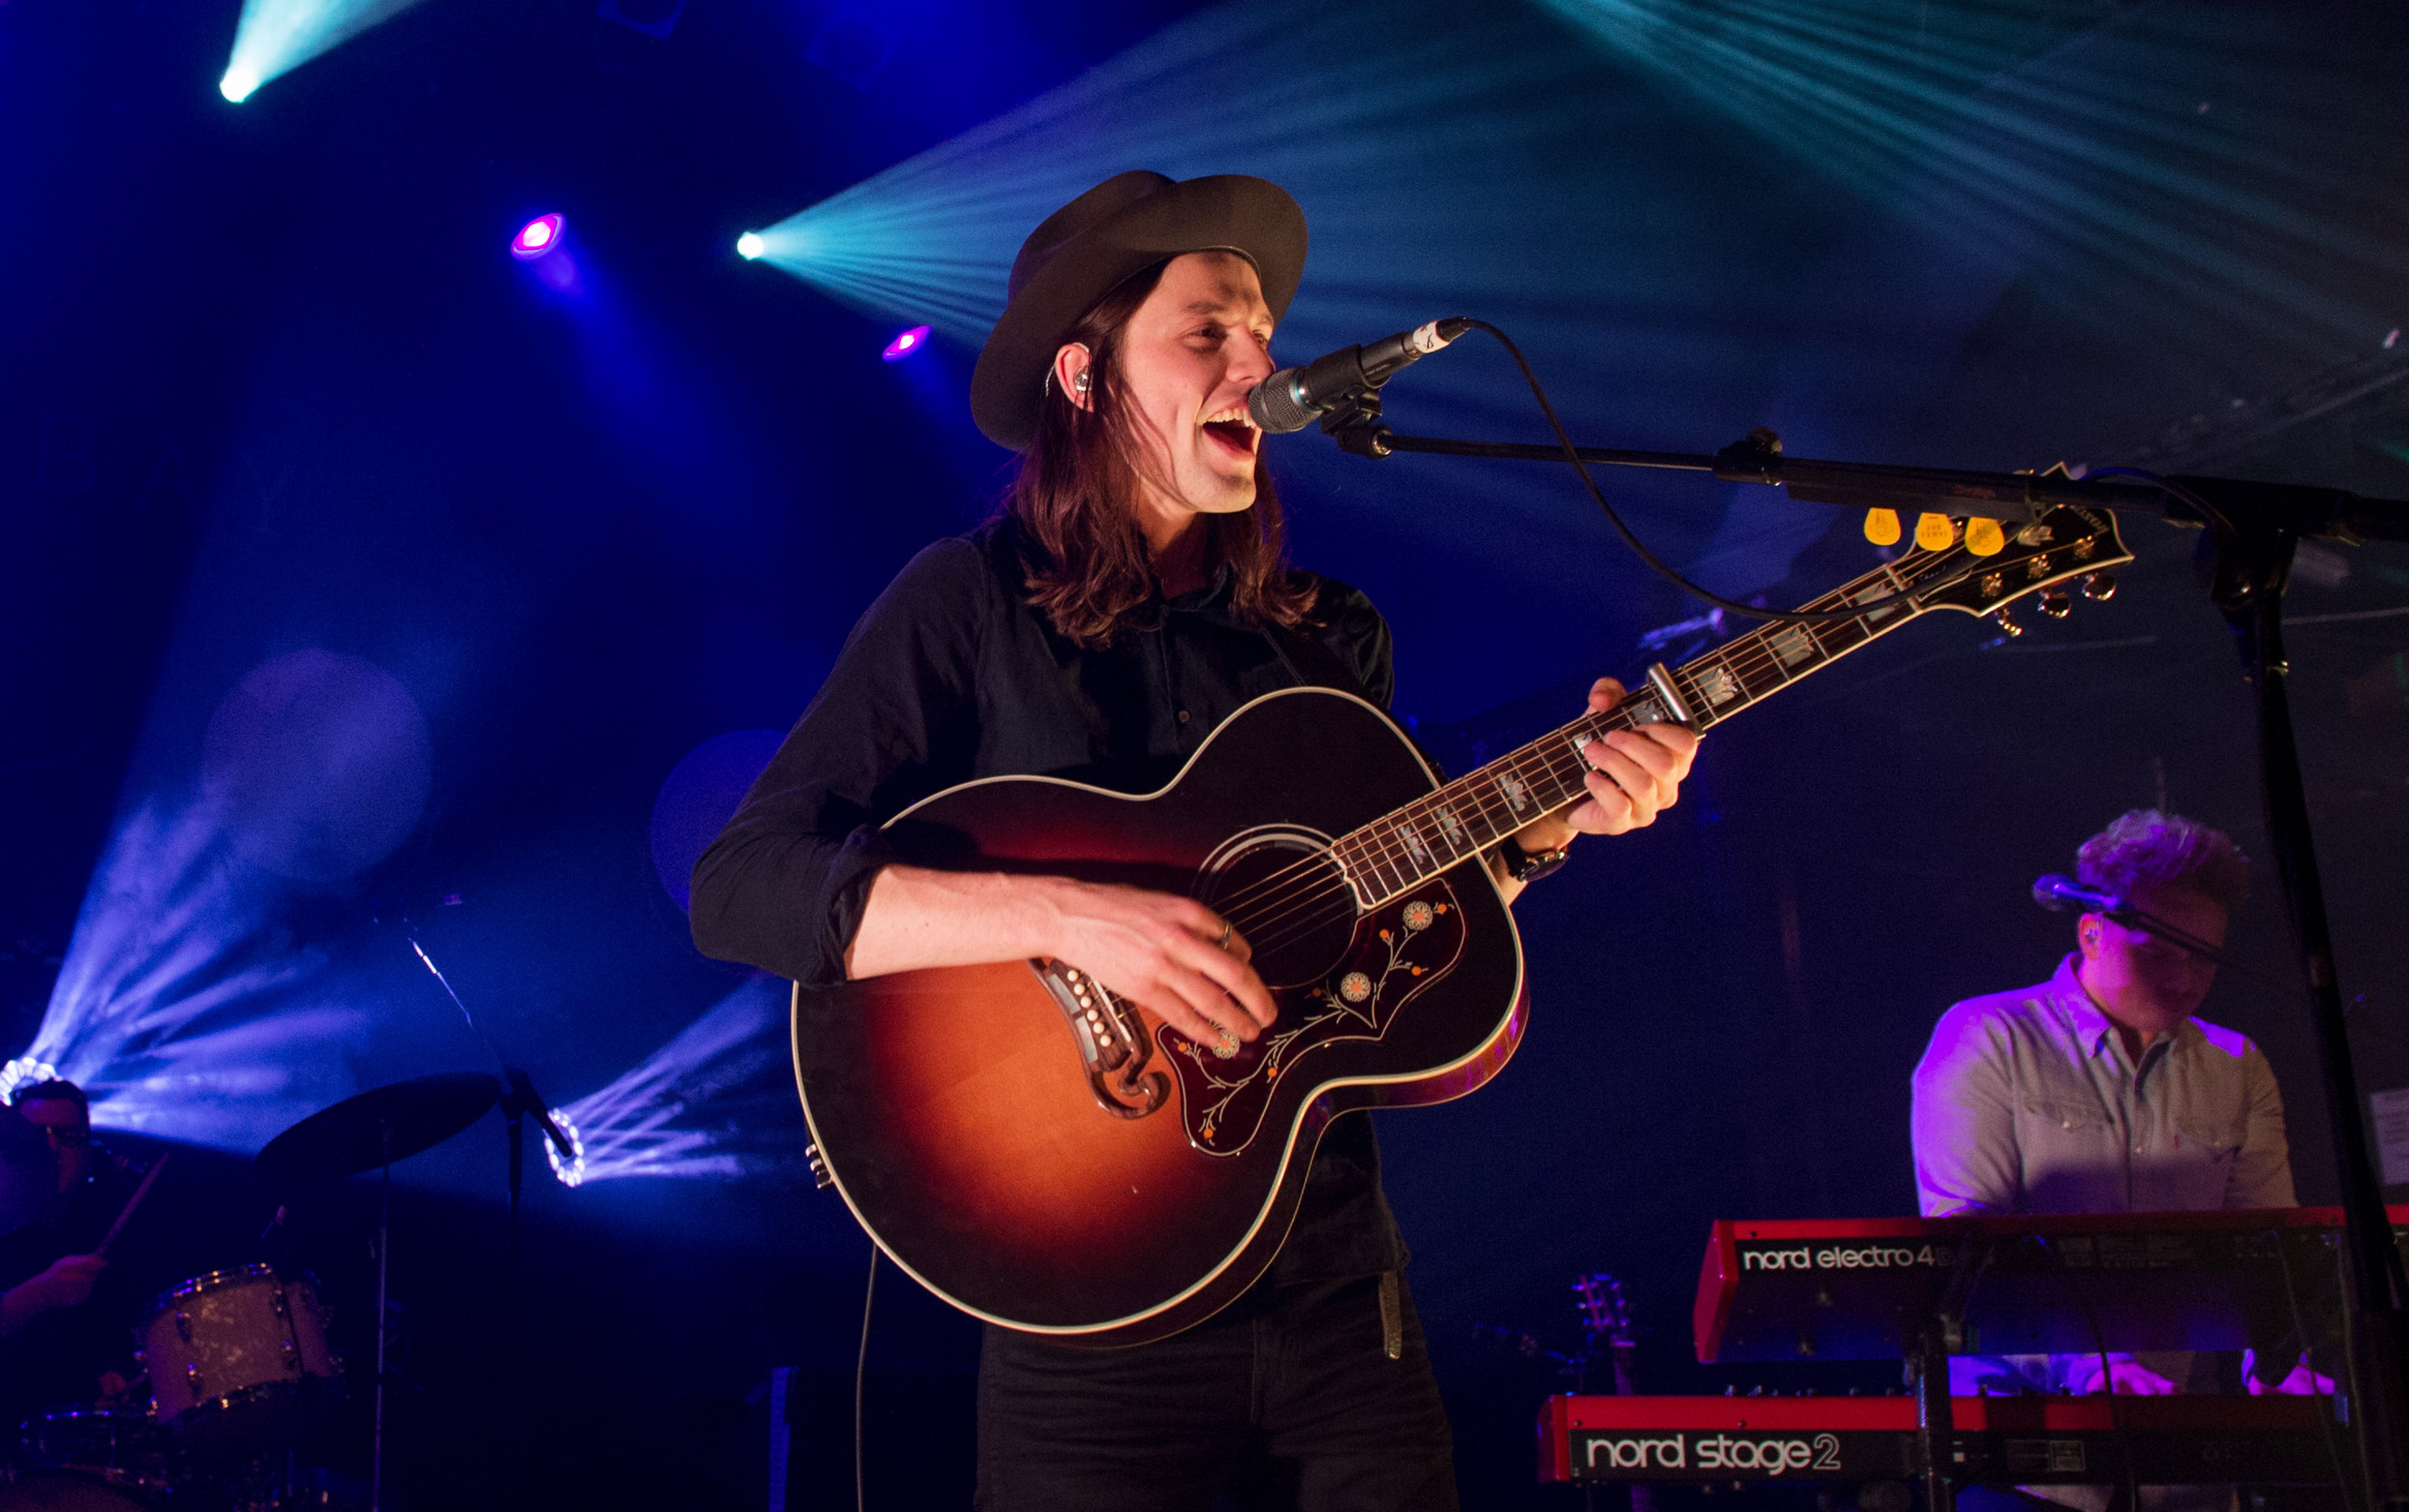 LONDON, ENGLAND - FEBRUARY 12:  James Bay performs at KOKO on February 12, 2015 in London, England.  (Photo by Samir Hussein/